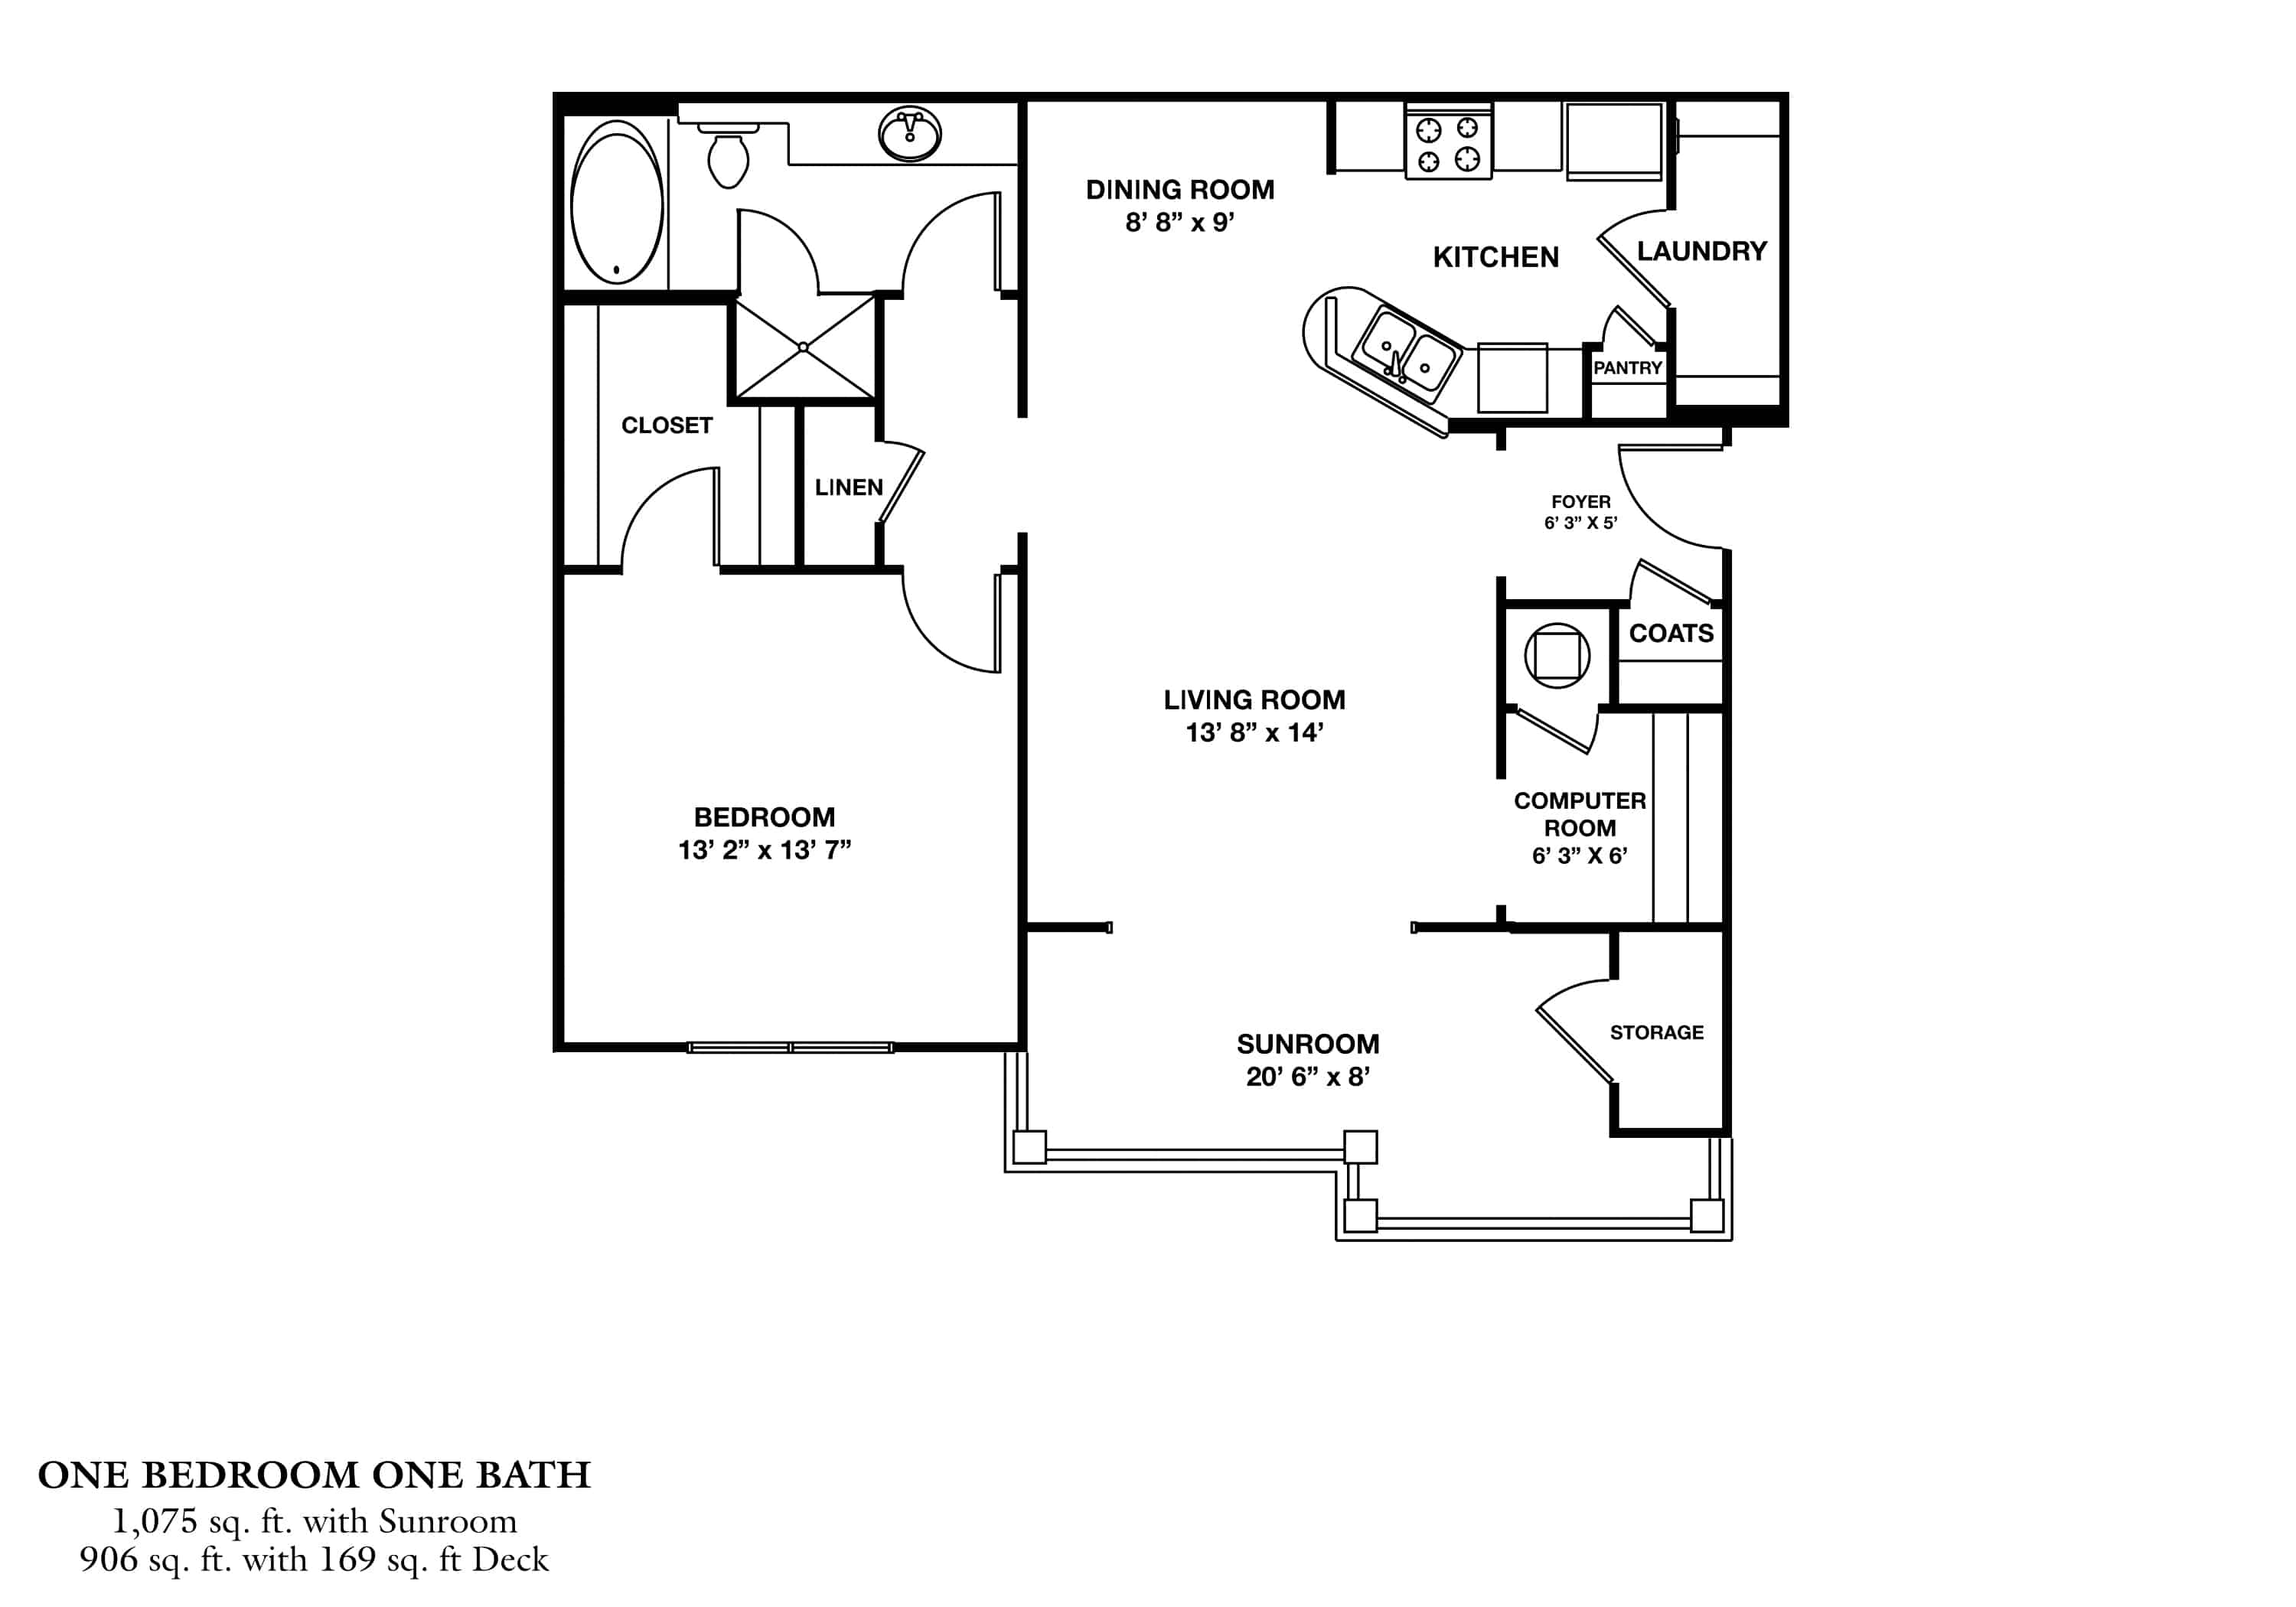 One Bedroom (ASR) Approx. 1,075 sq. ft. with Sunroom